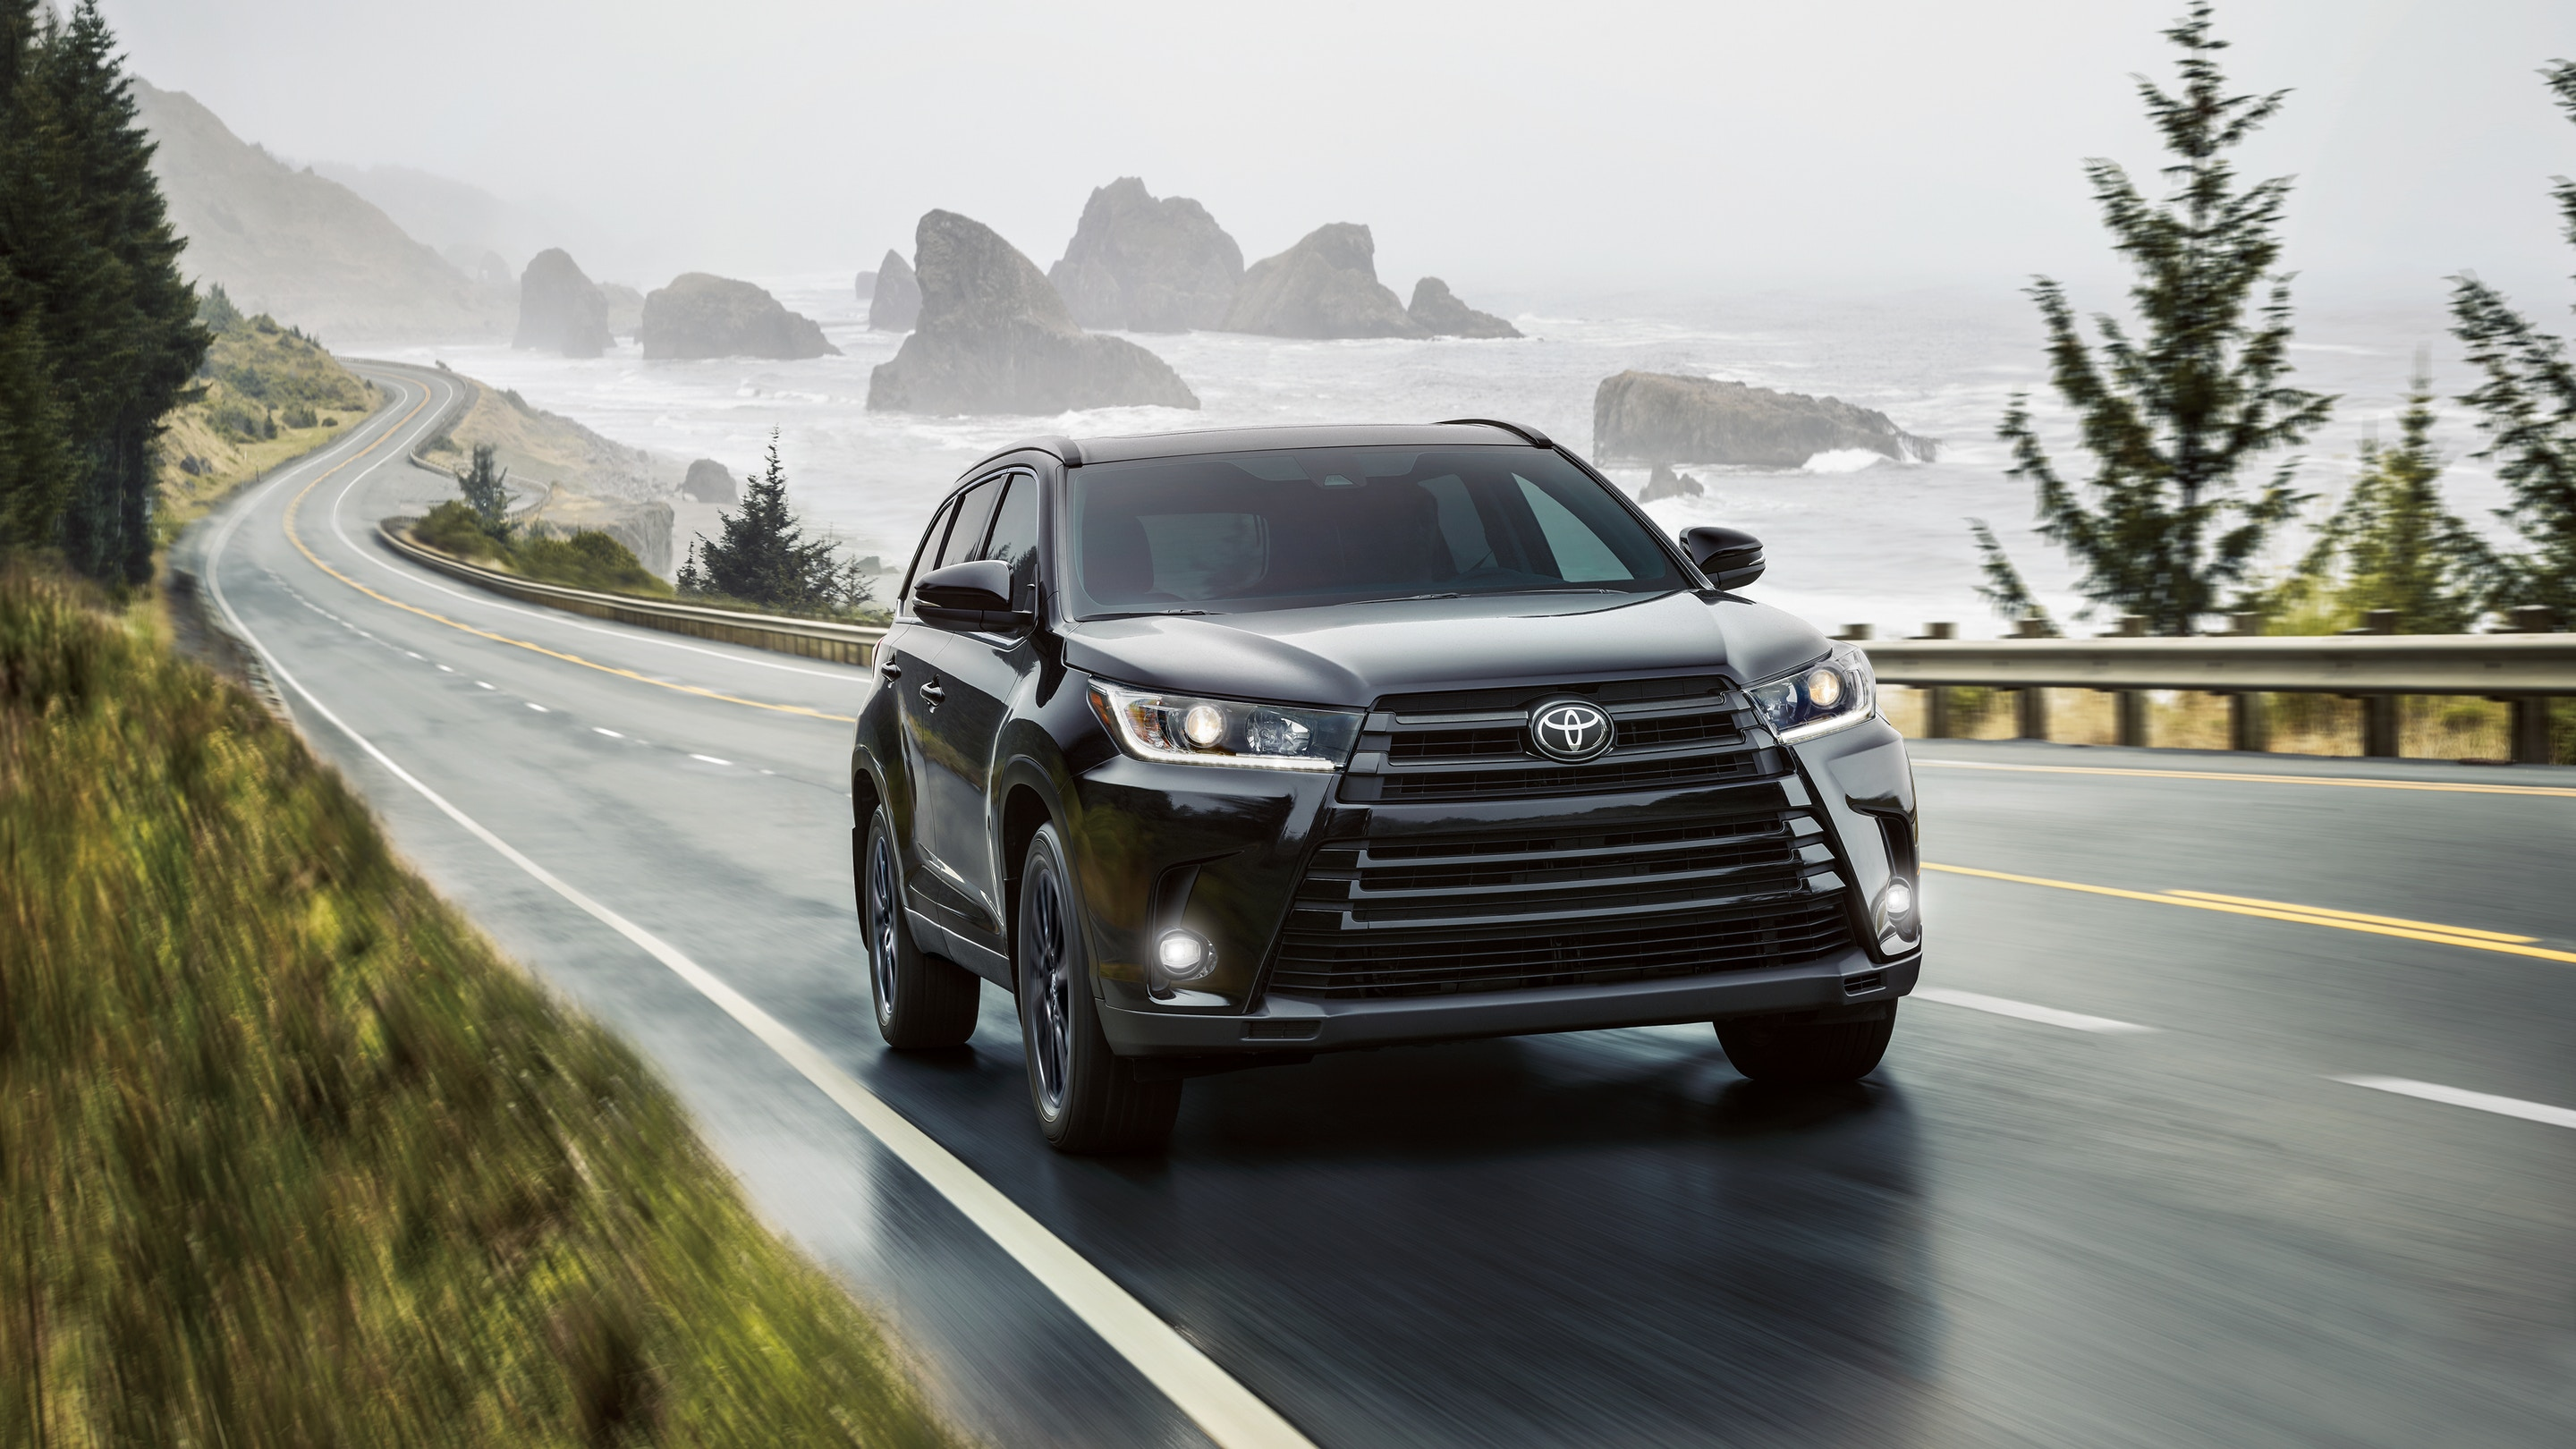 2019 Toyota Highlander Leasing near Chicago, IL